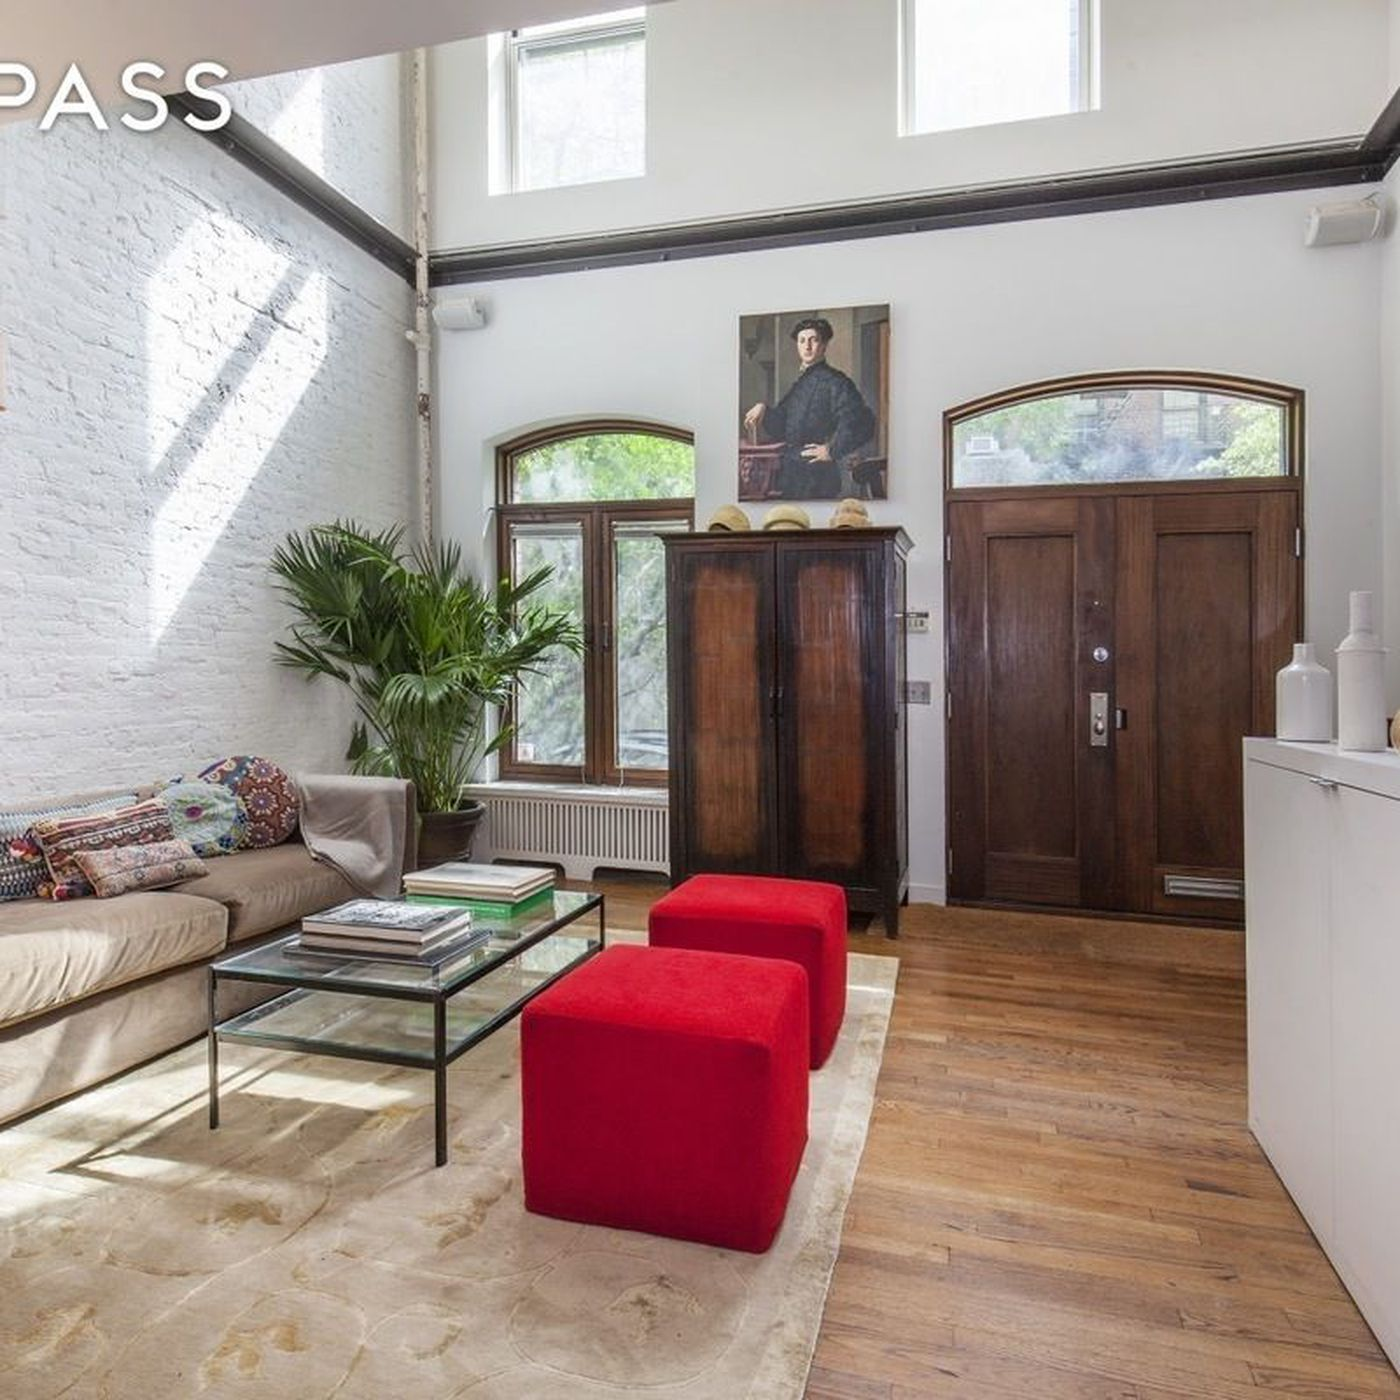 For $575M, A 116 Year Old Chelsea Townhouse That Exudes Old World Charm